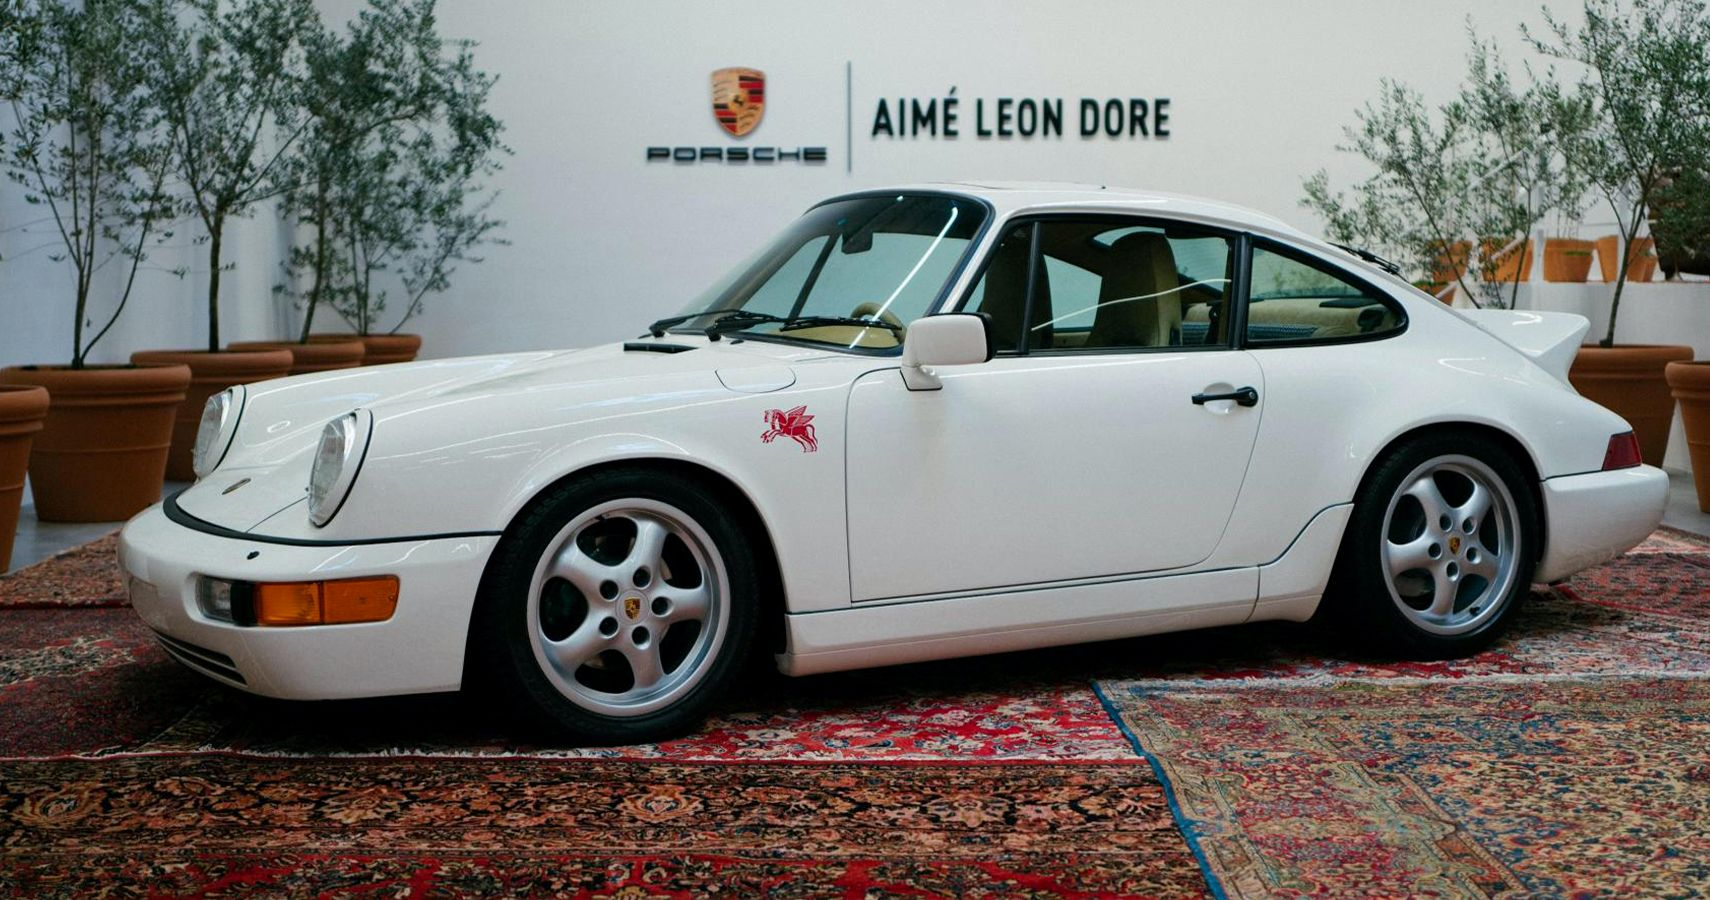 Haute Couture-Inspired Aimé Leon Dore Porsche 964 Ready For The Runway - HotCars